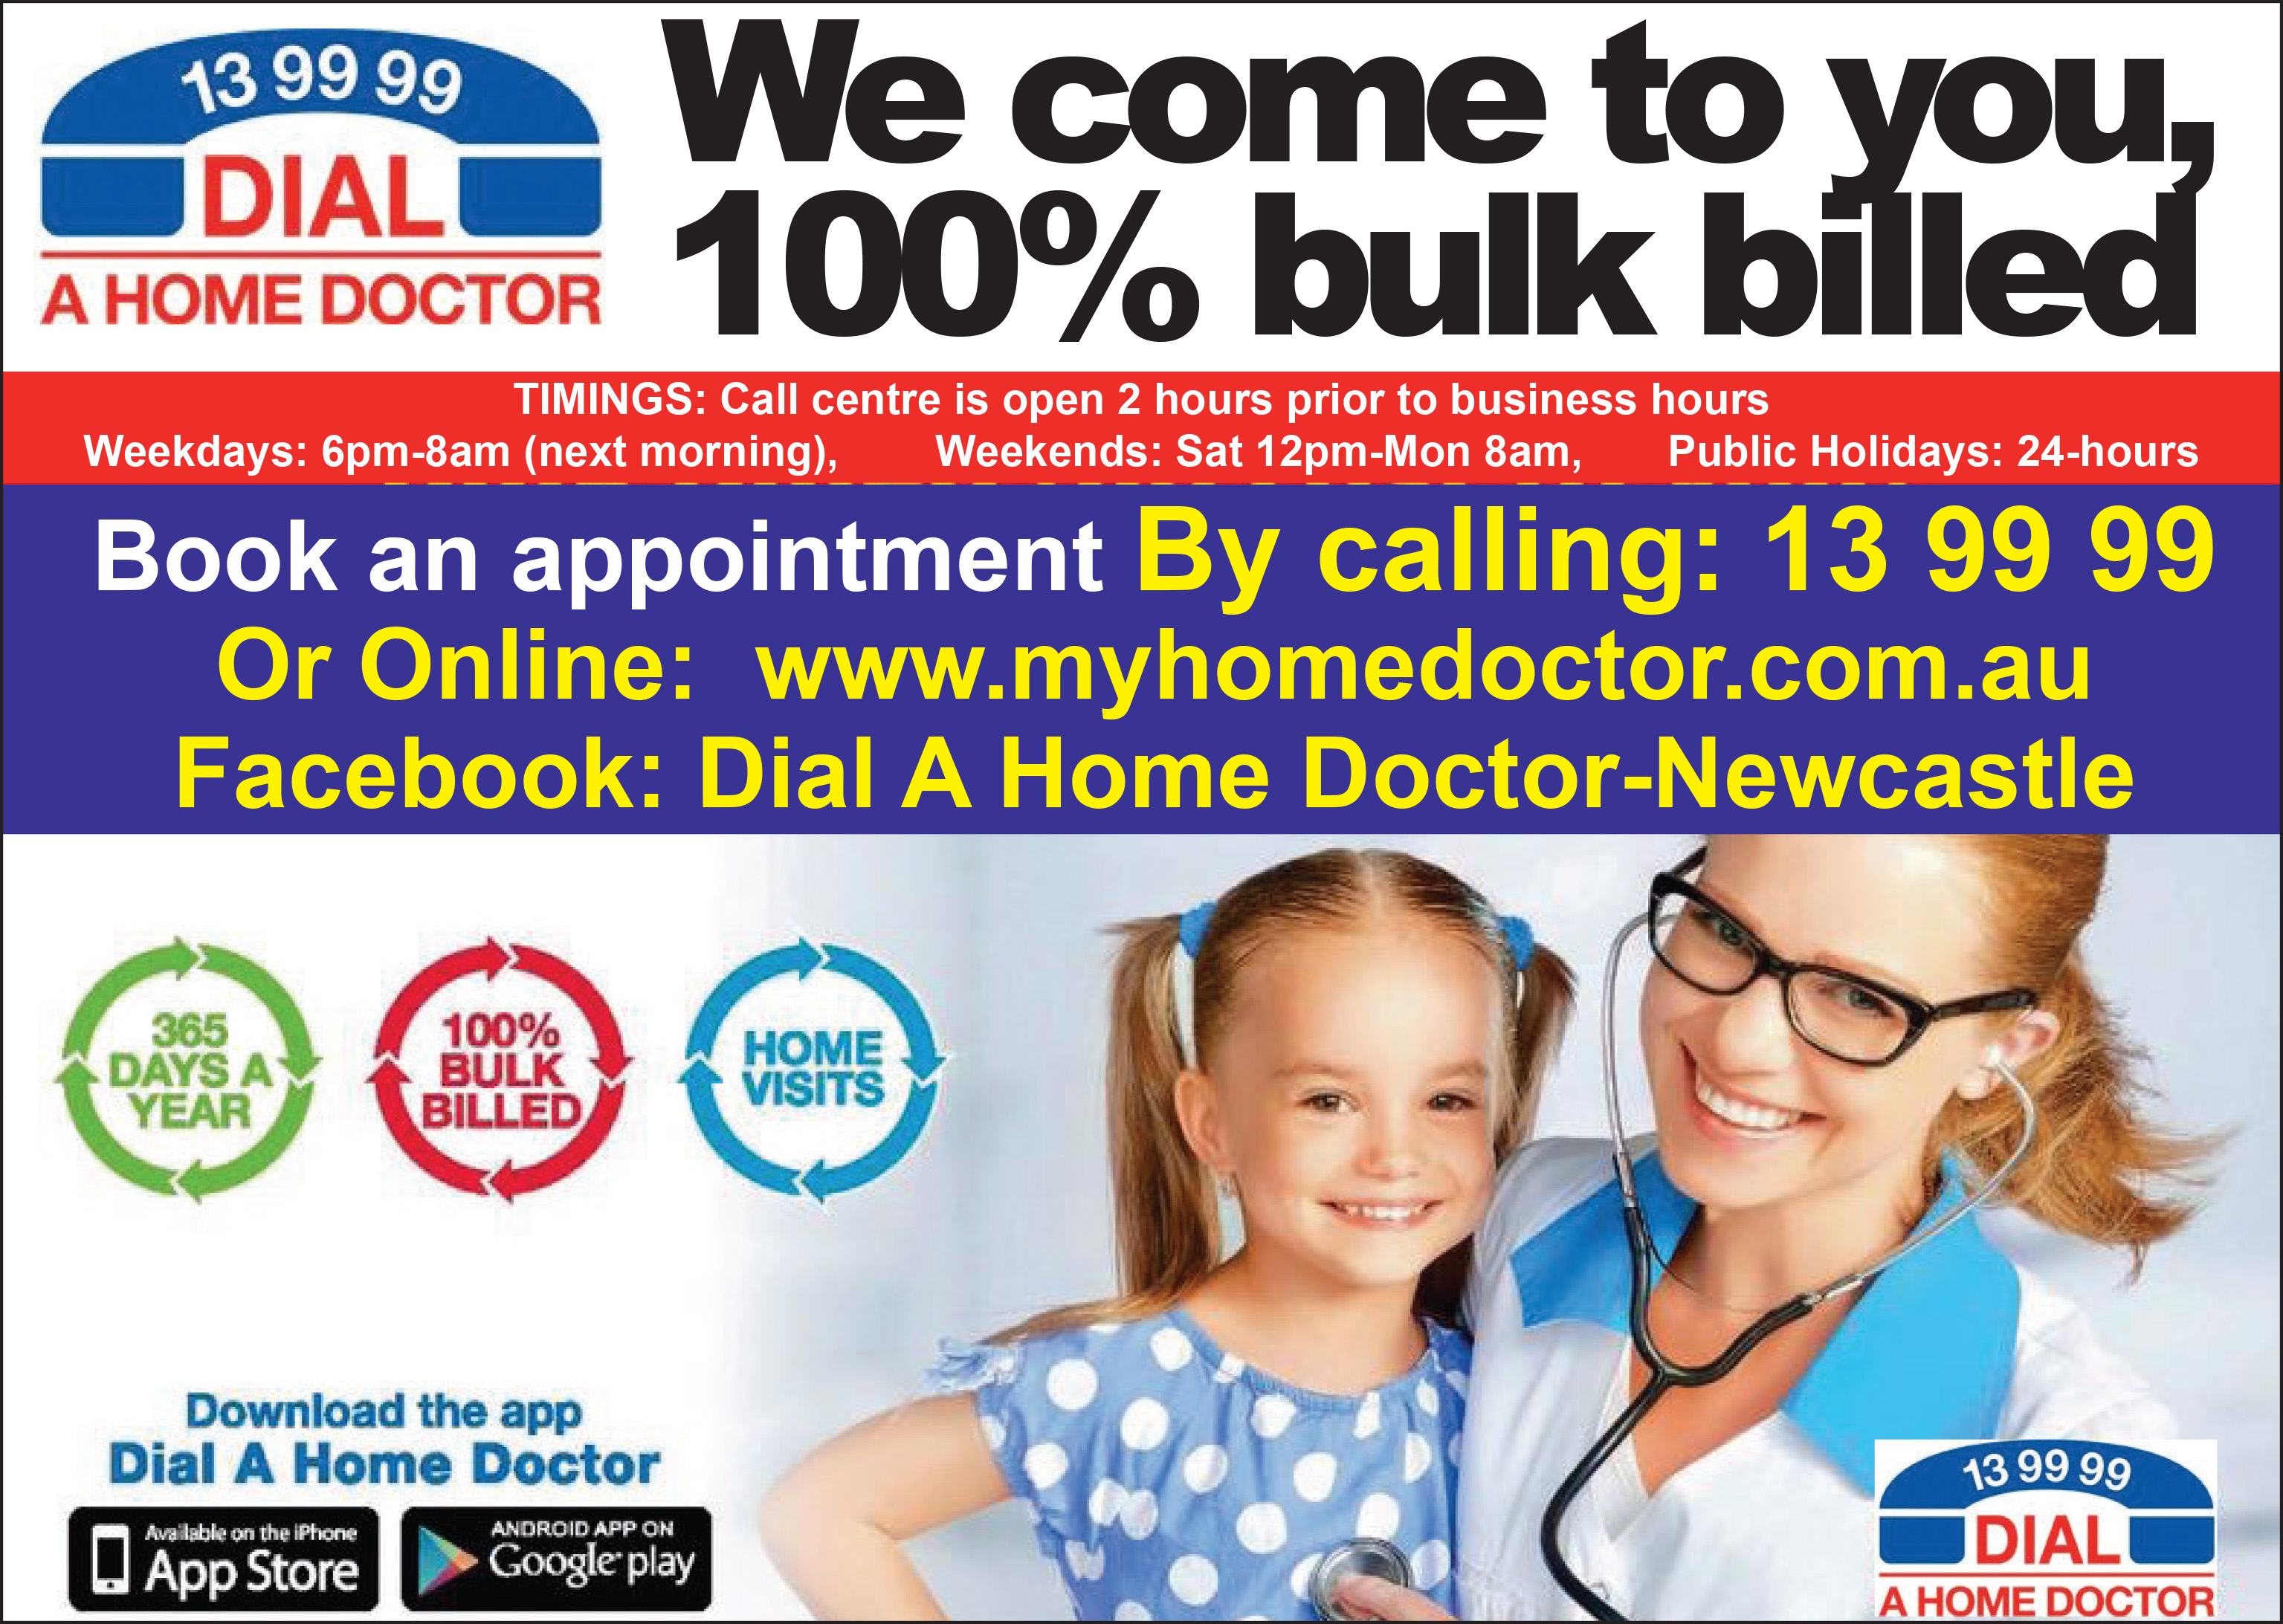 Dial A Home Doctor